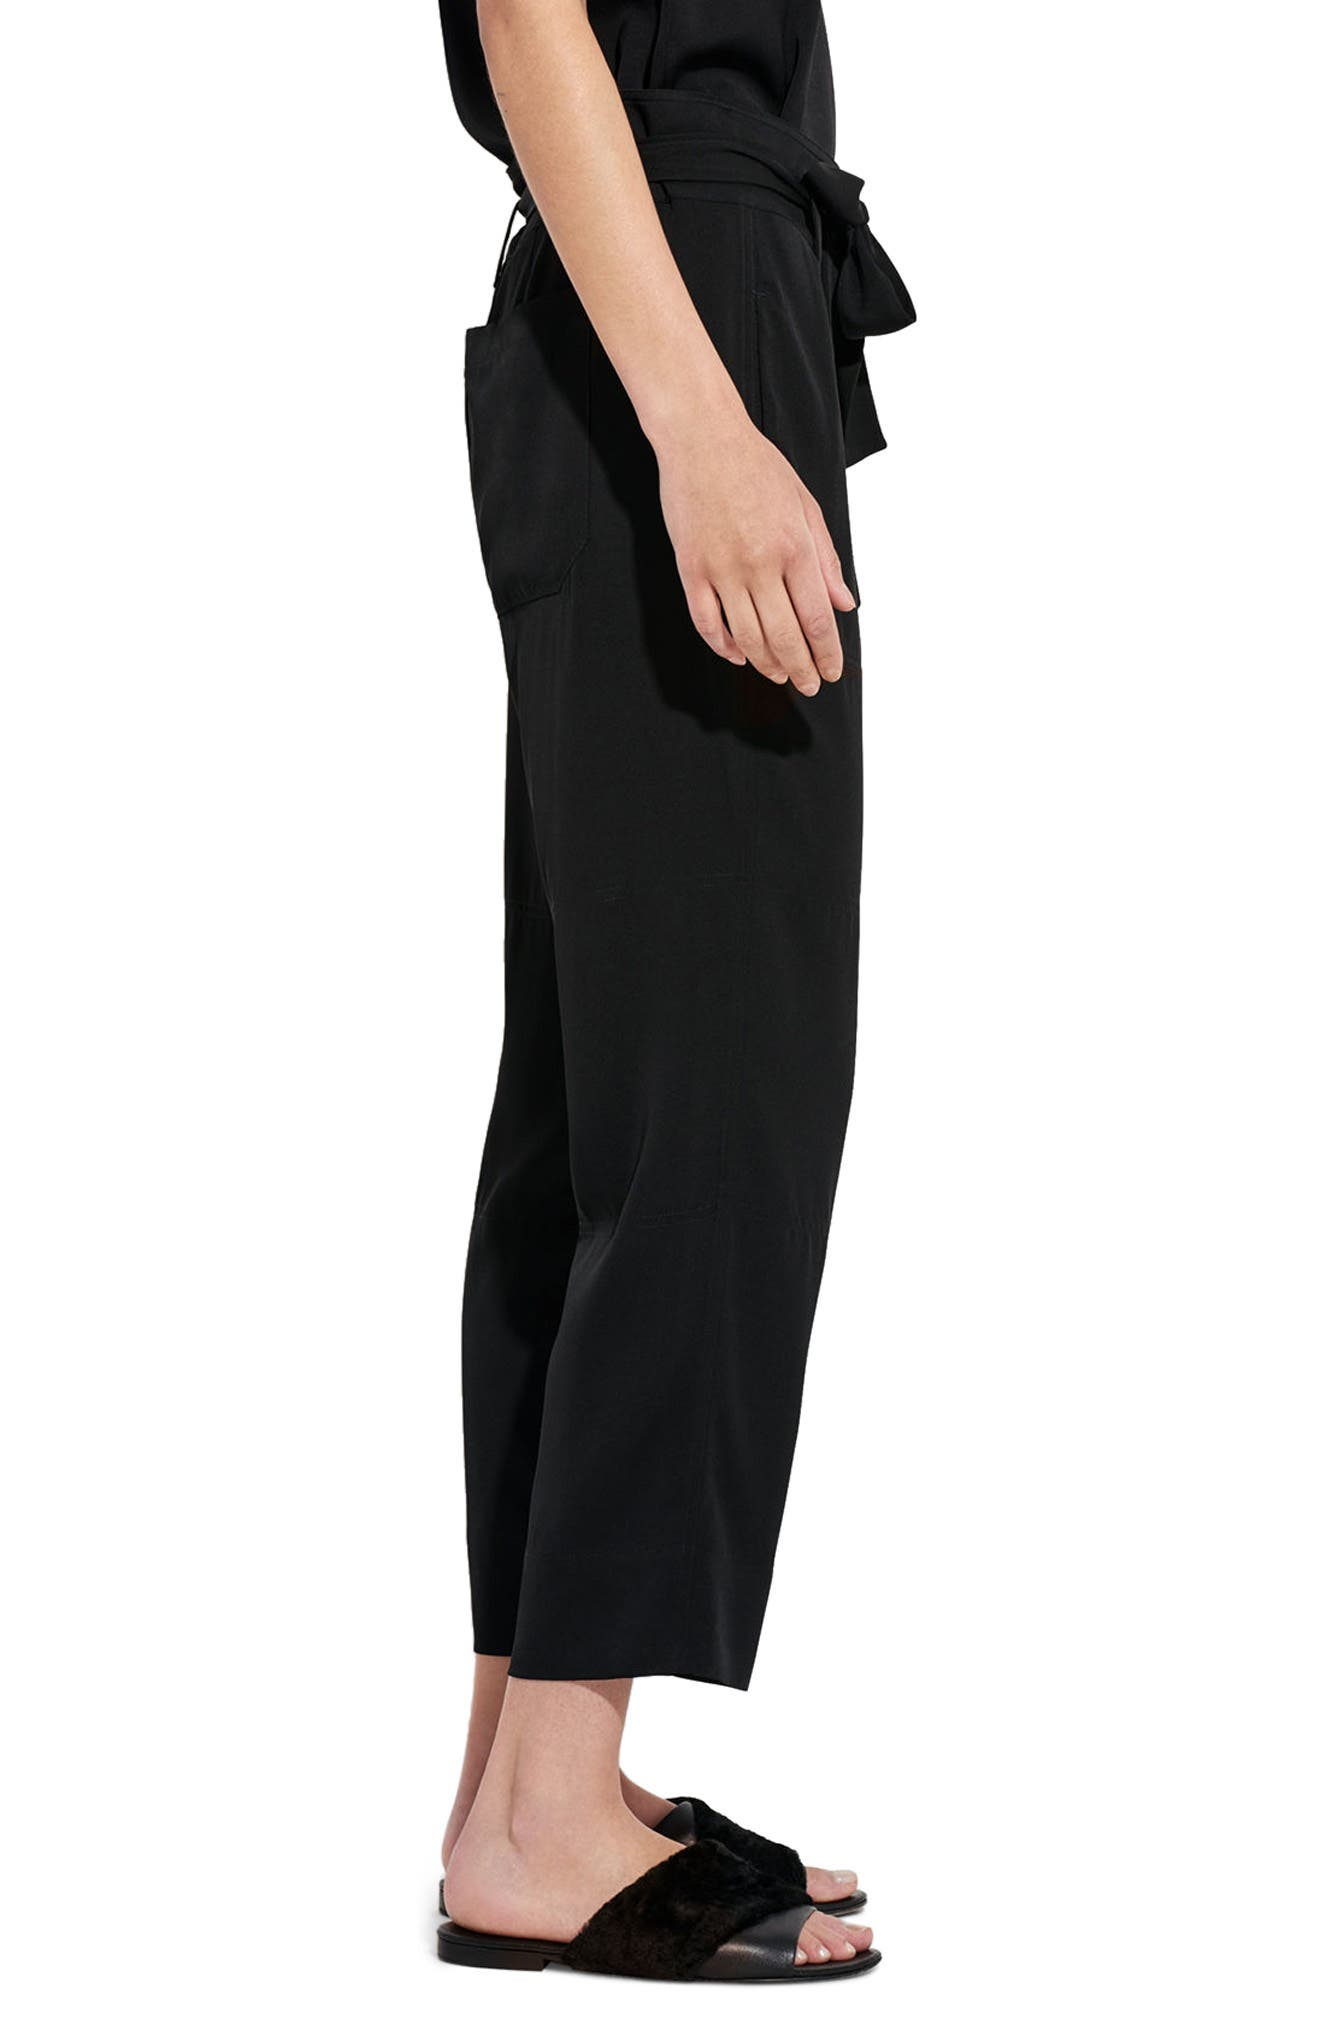 The Mirage High Waist Crop Straight Leg Pants,                             Alternate thumbnail 3, color,                             Black